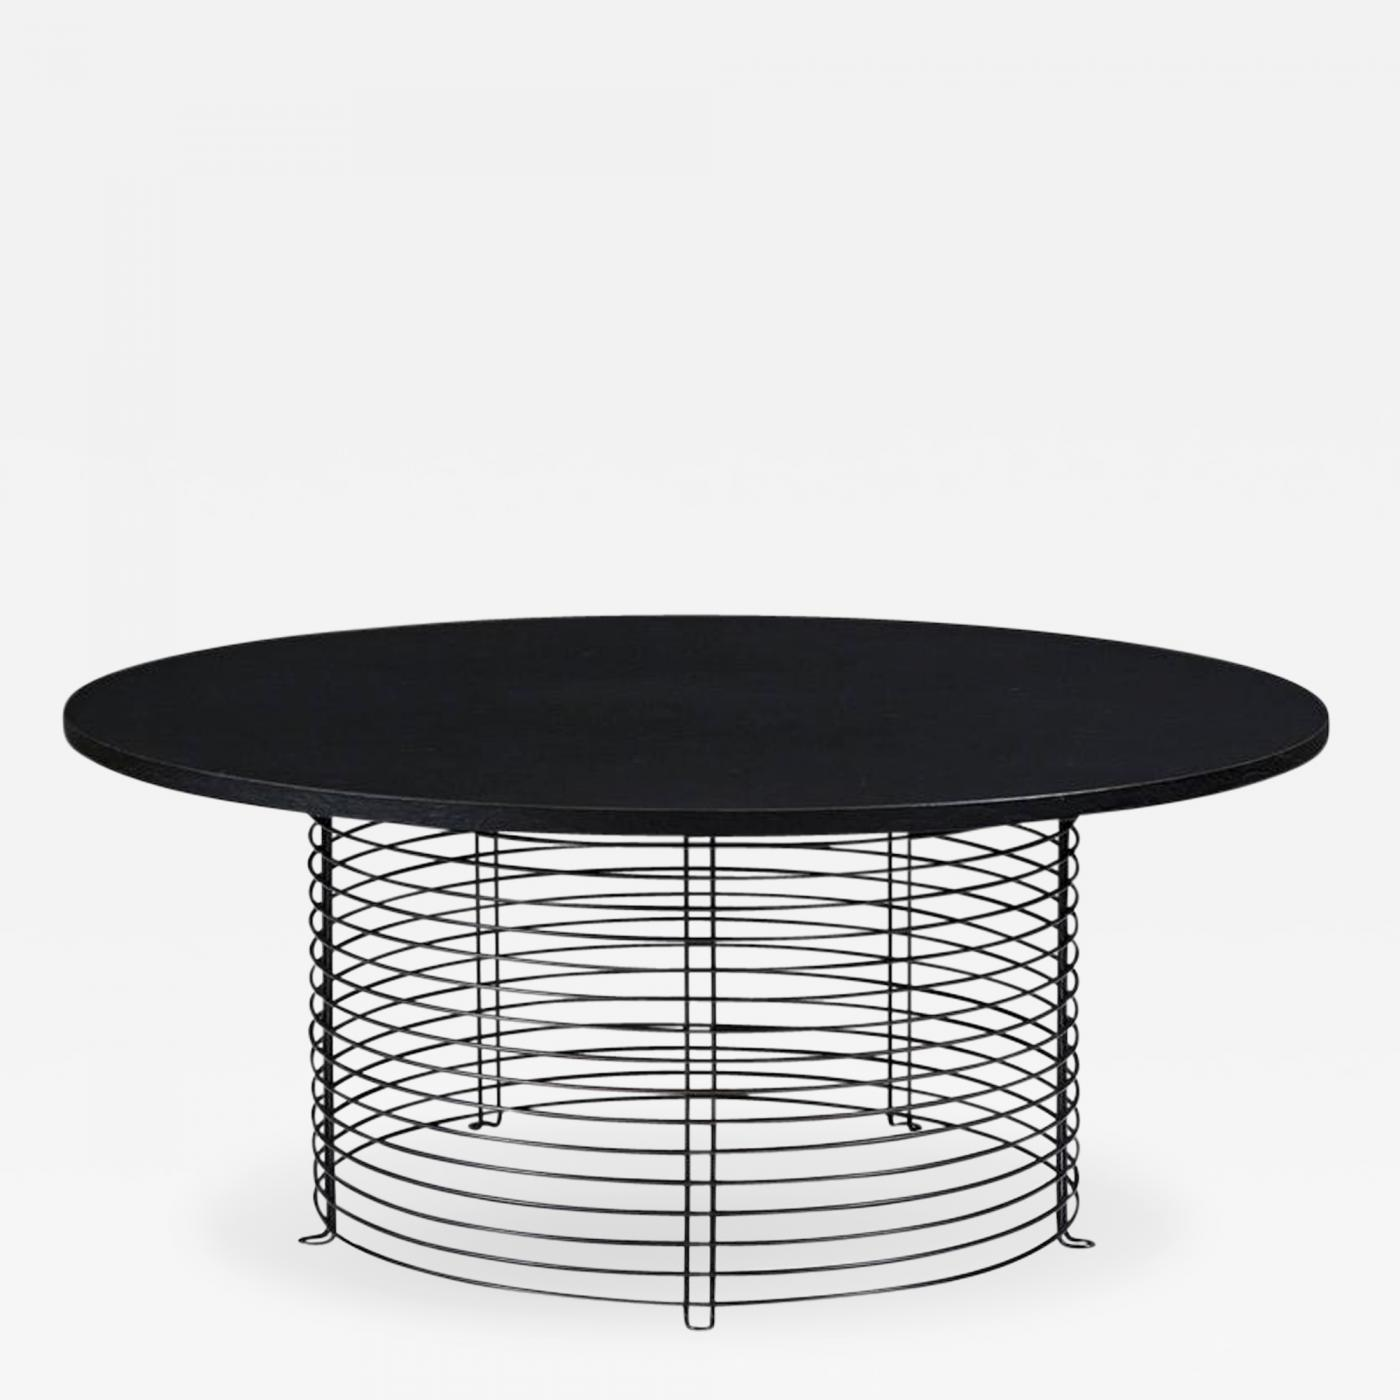 Verner Panton Verner Panton Model 421P Round Coffee Table